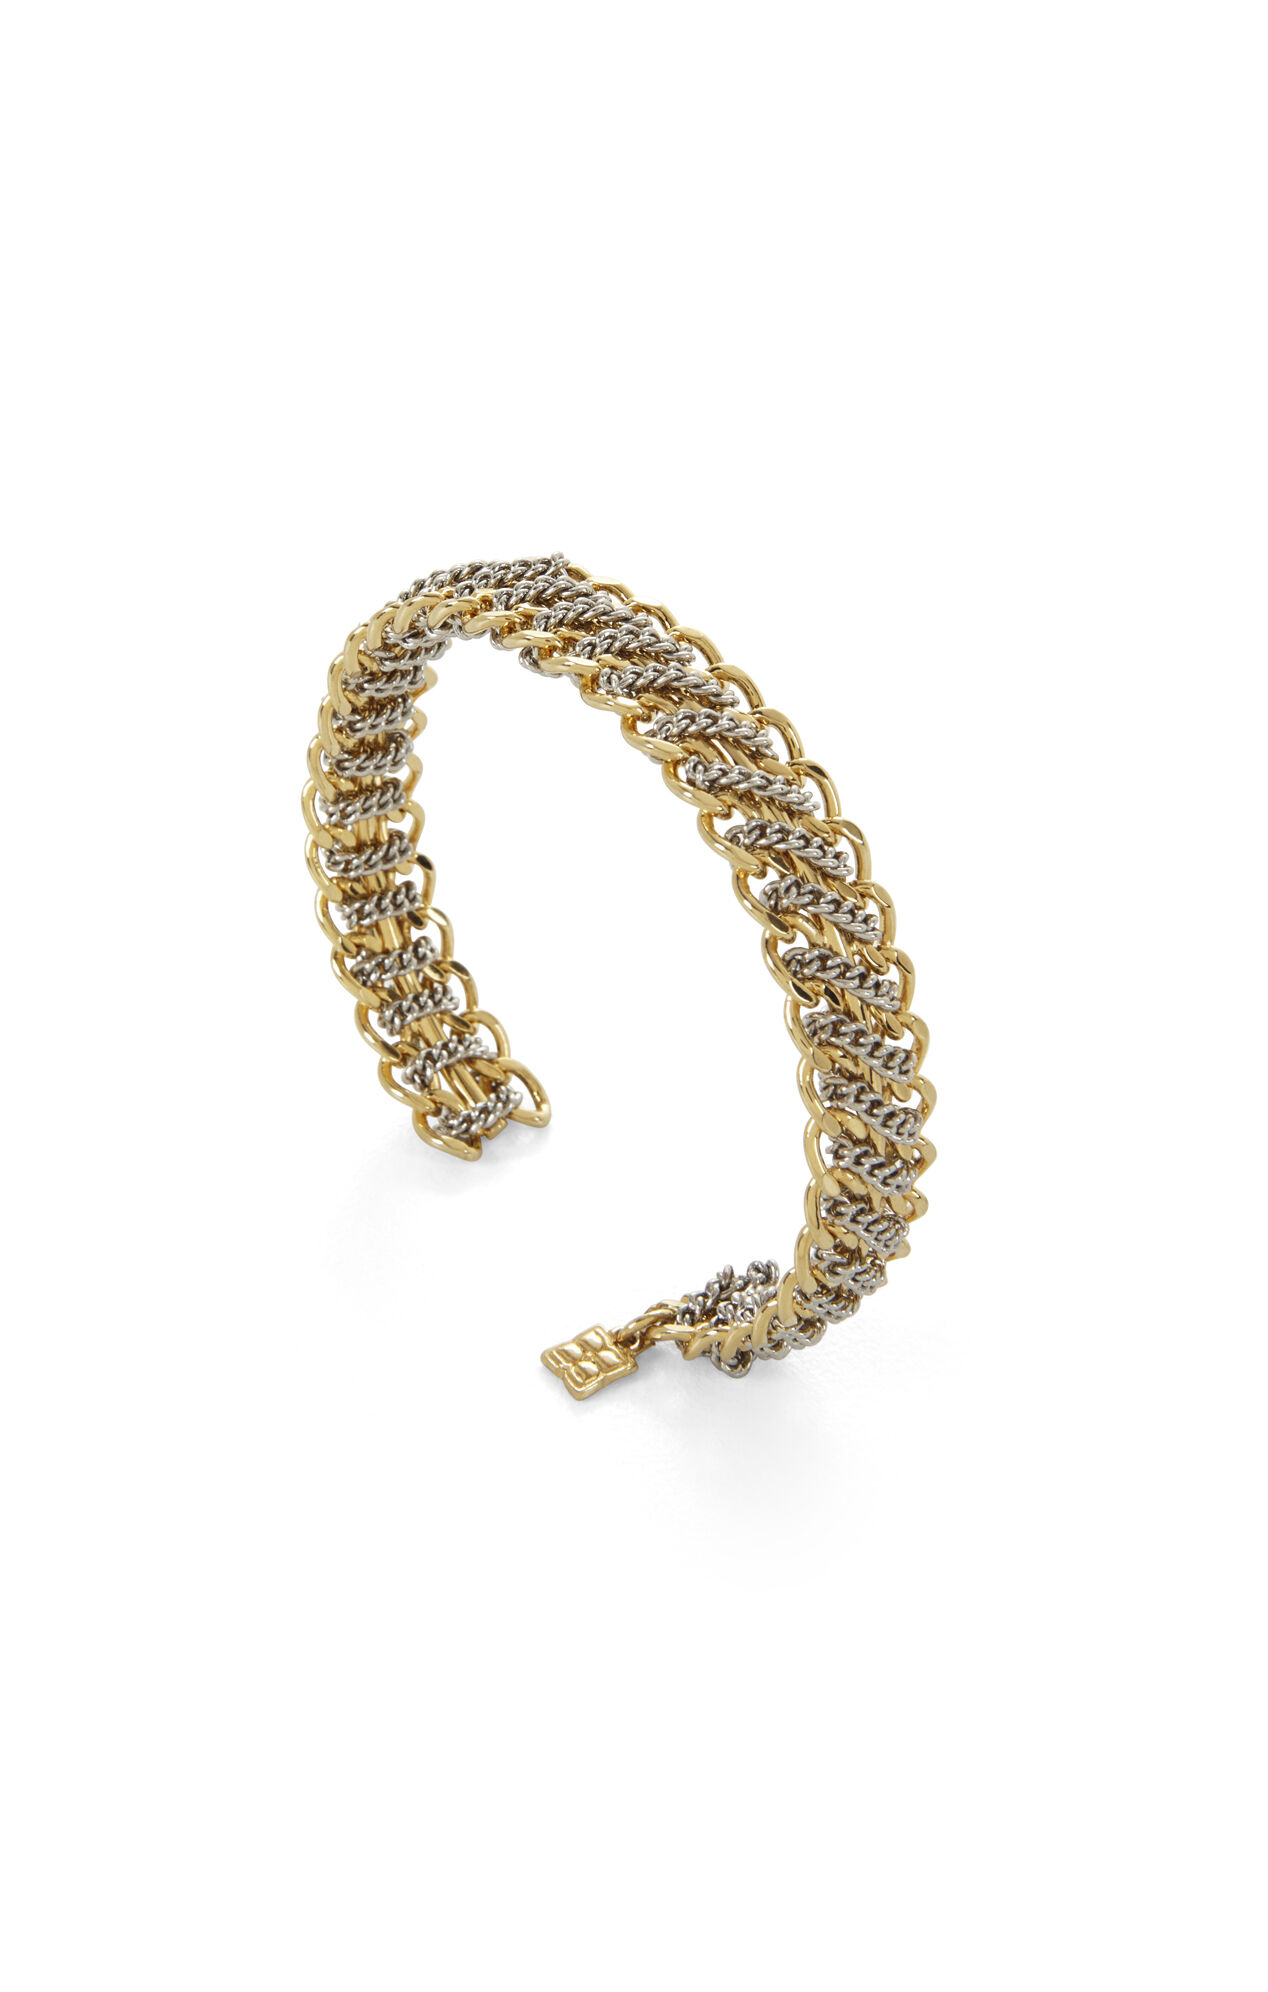 Dual-Finish Chain Cuff